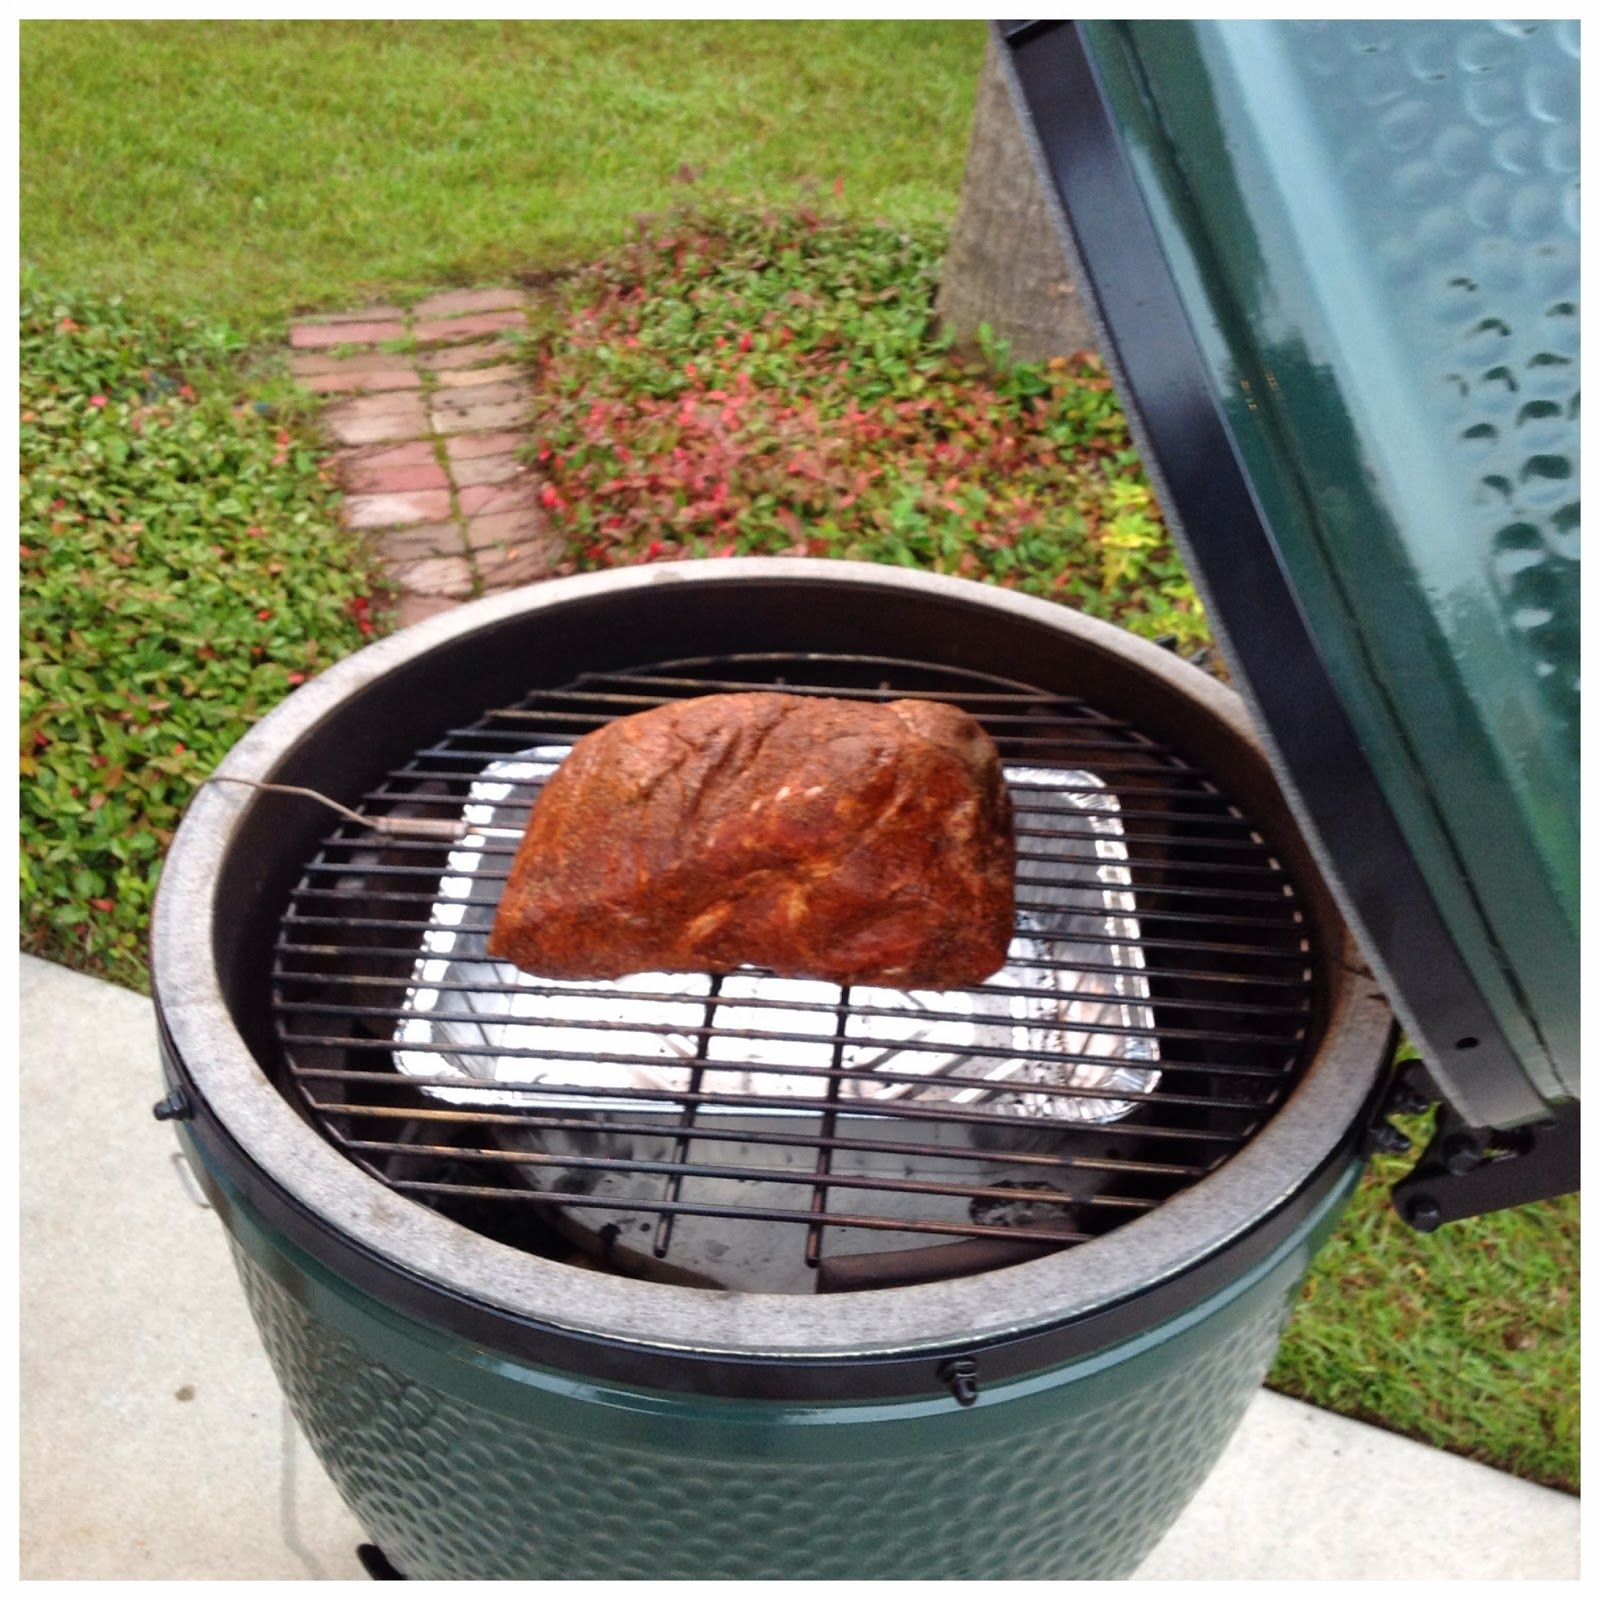 Big Green Egg: Slow Cooked, Juicy Boston Butt  The Lowcountry Lady